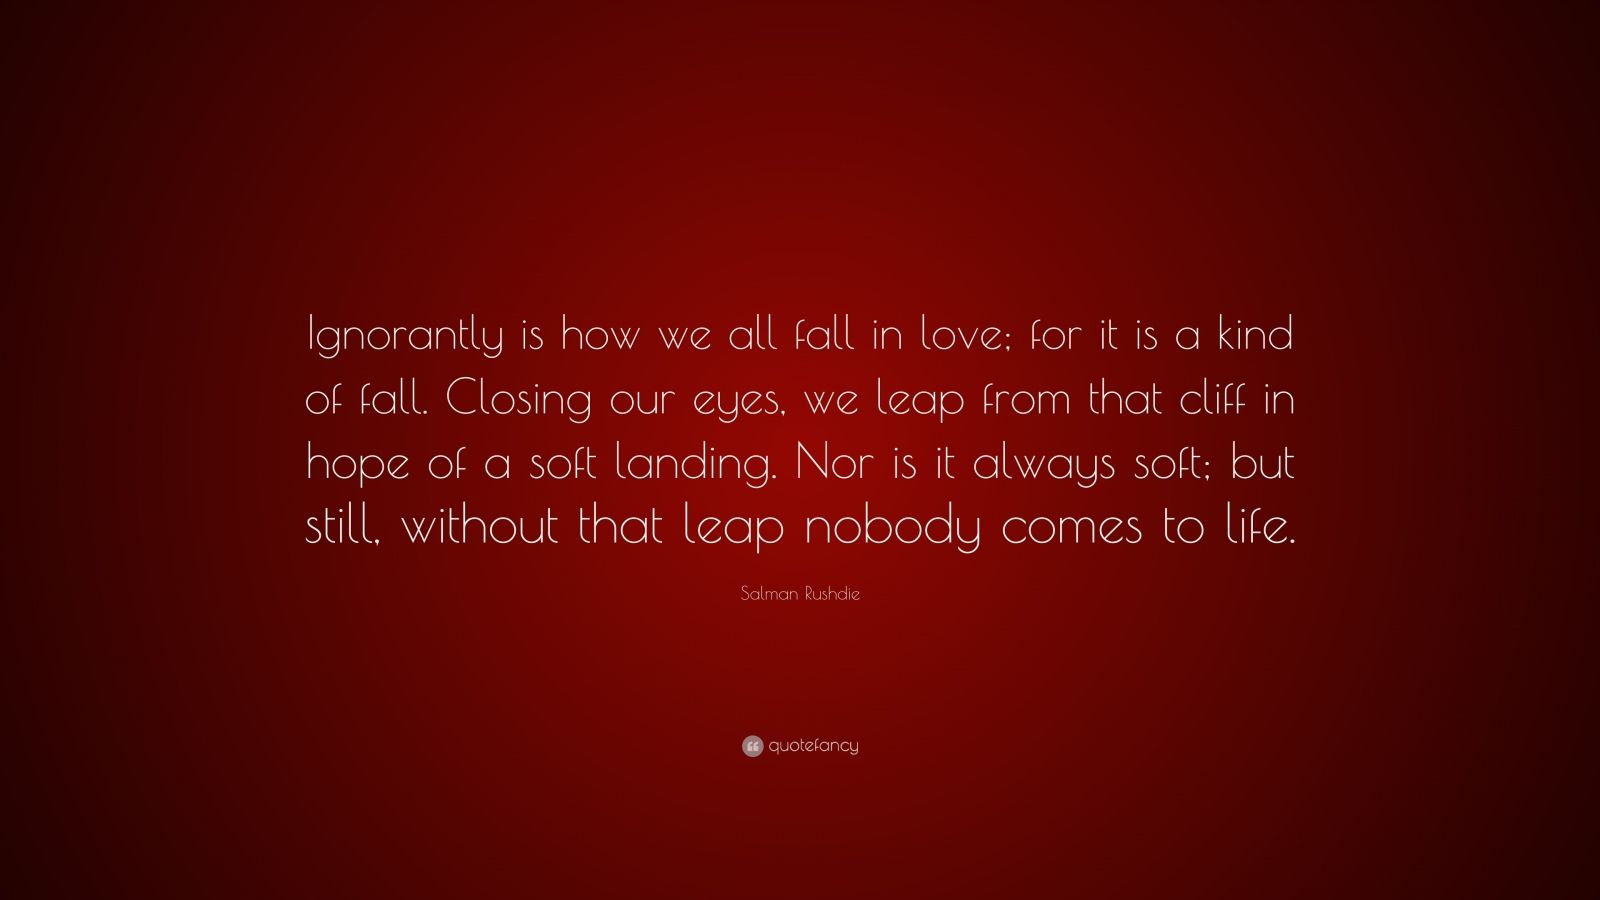 """Salman Rushdie Quote: """"Ignorantly is how we all fall in love; for it is a kind of fall. Closing our eyes, we leap from that cliff in hope of a soft landing. Nor is it always soft; but still, without that leap nobody comes to life."""""""